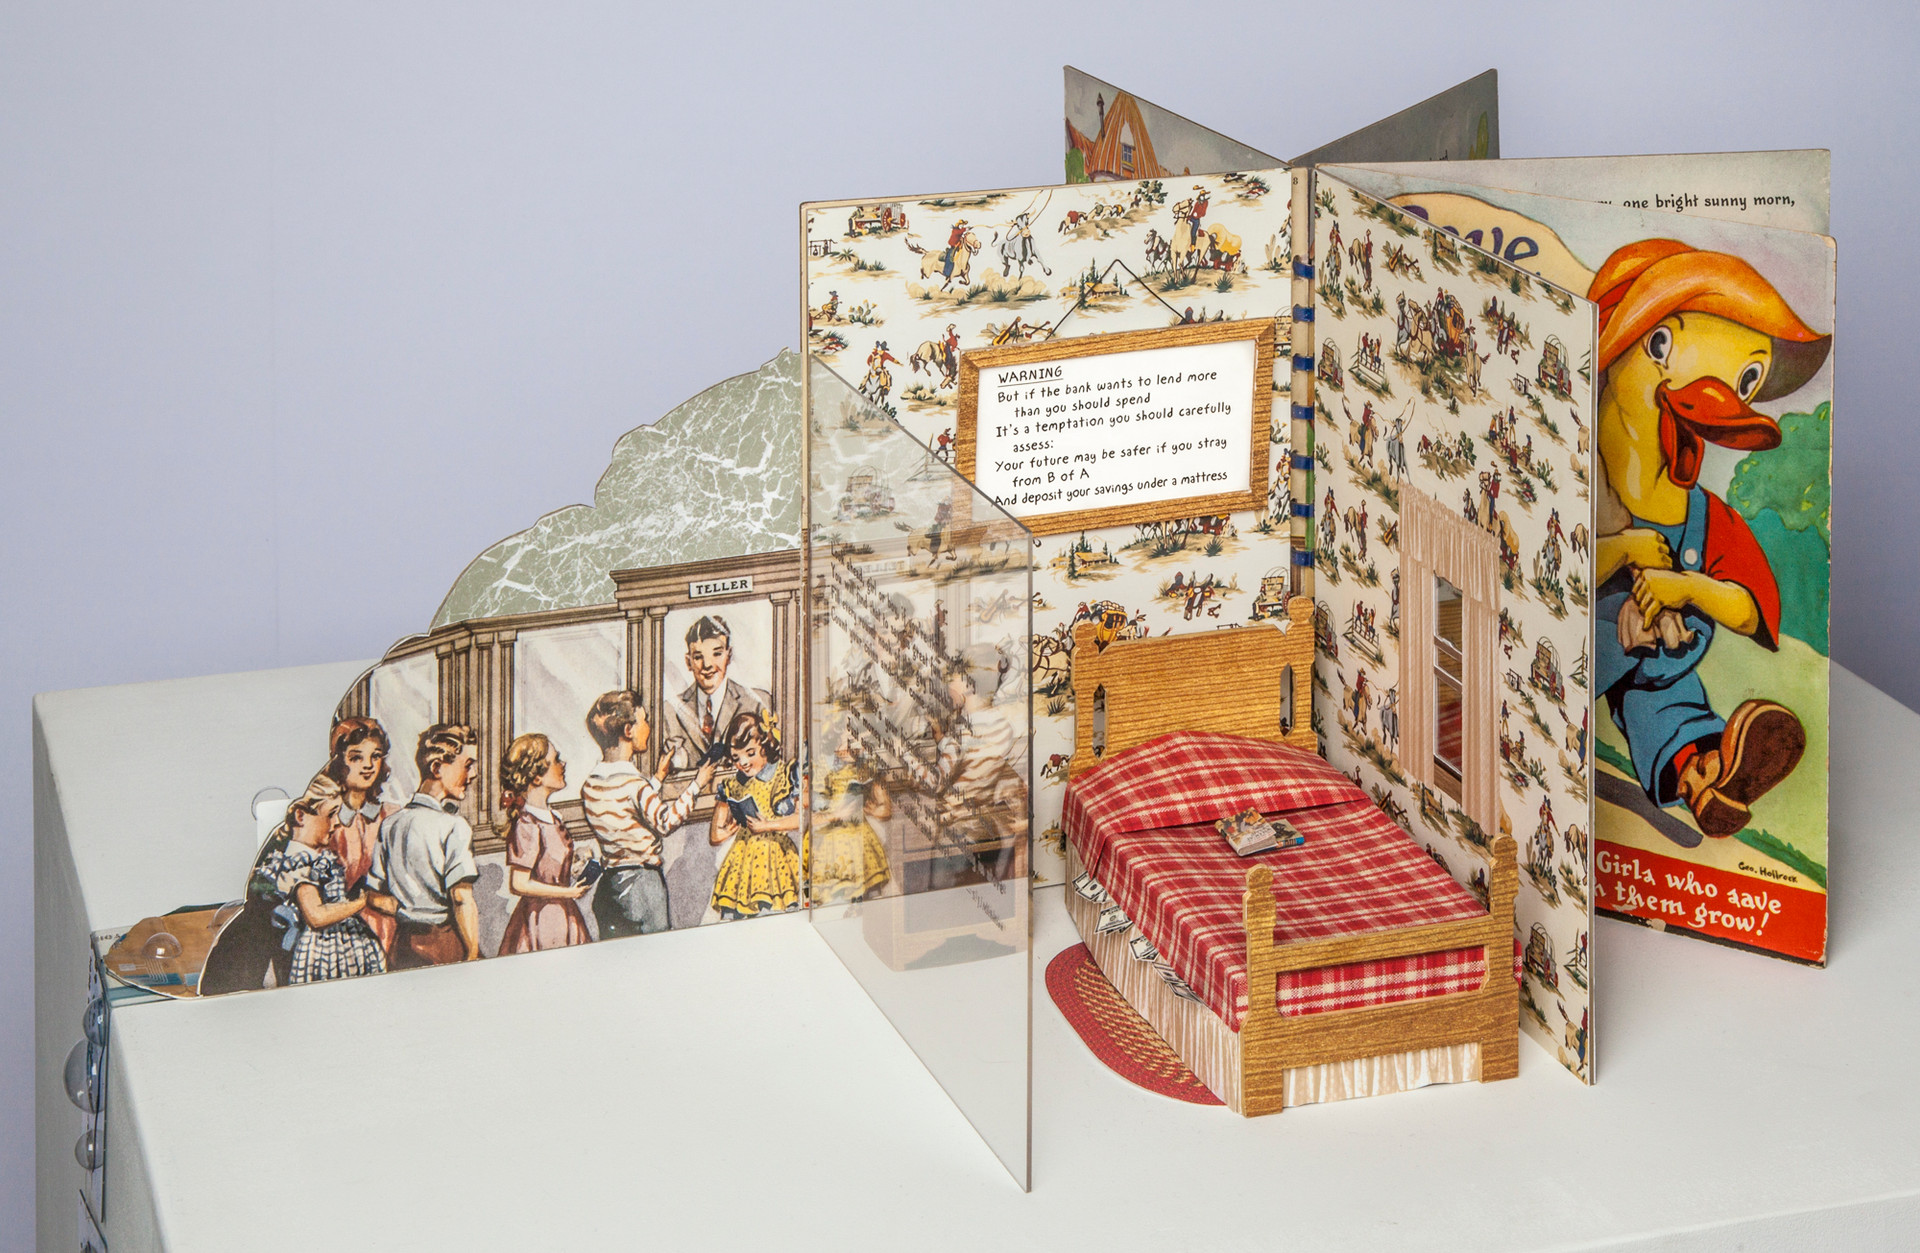 """Moral of altered version is hanging in frame above child's bed. As per this """"Warning,"""" money is stored under the mattress as opposed to in the bank. [All furniture and fabric in this mini tableau has been purposely constructed of paper so as to integrate with book's materials.]"""